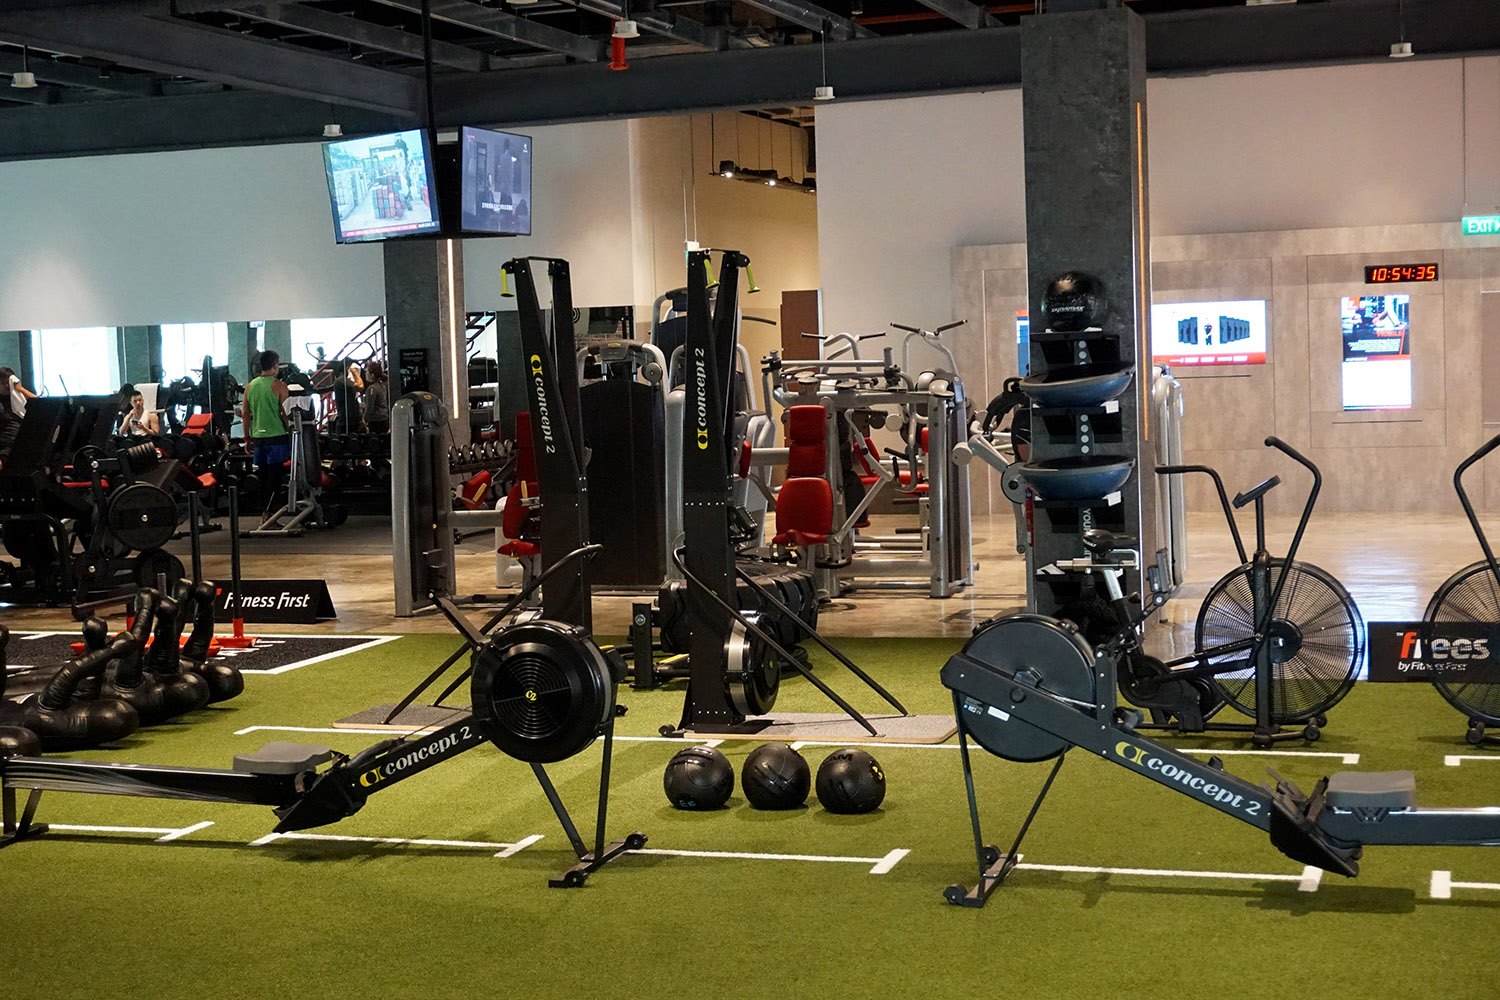 Fitness First Bugis Junction: 5 classes to try now